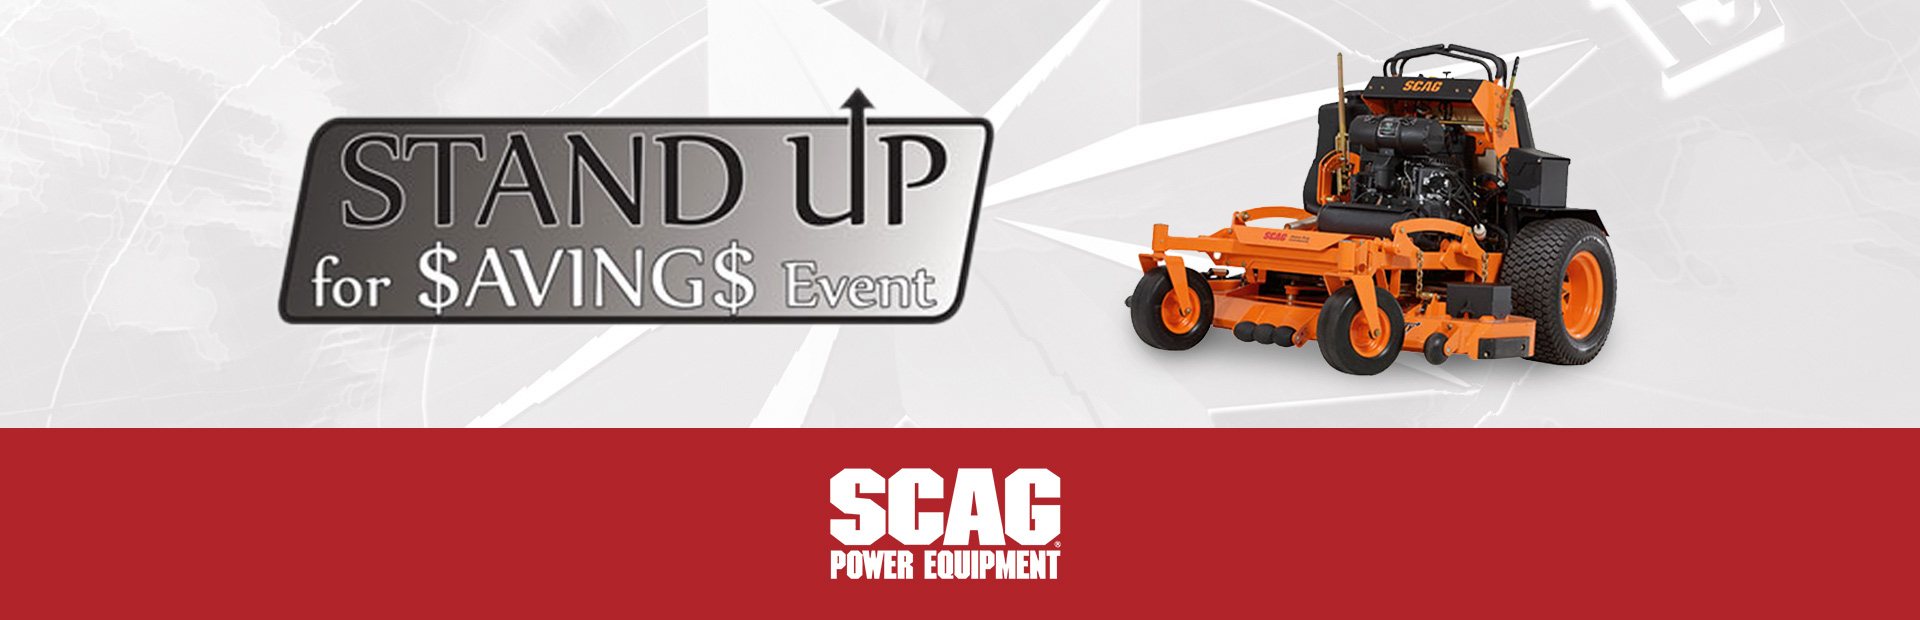 Scag: STAND UP FOR SAVINGS EVENT